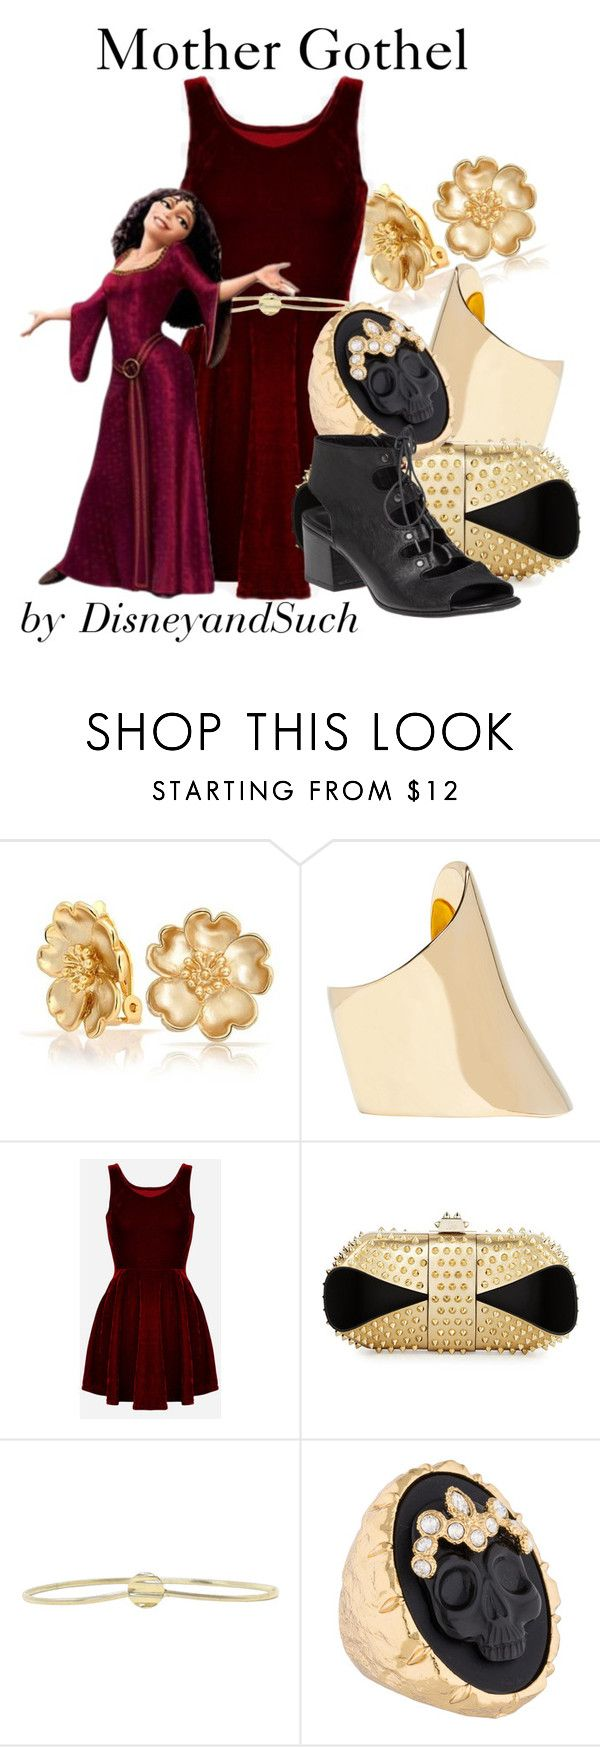 """Mother Gothel"" by disneyandsuch ❤ liked on Polyvore featuring Bling Jewelry, Maiyet, Christian Louboutin, Alexis Bittar, 275 Central, disney, tangled and WhereIsMySuperSuit"